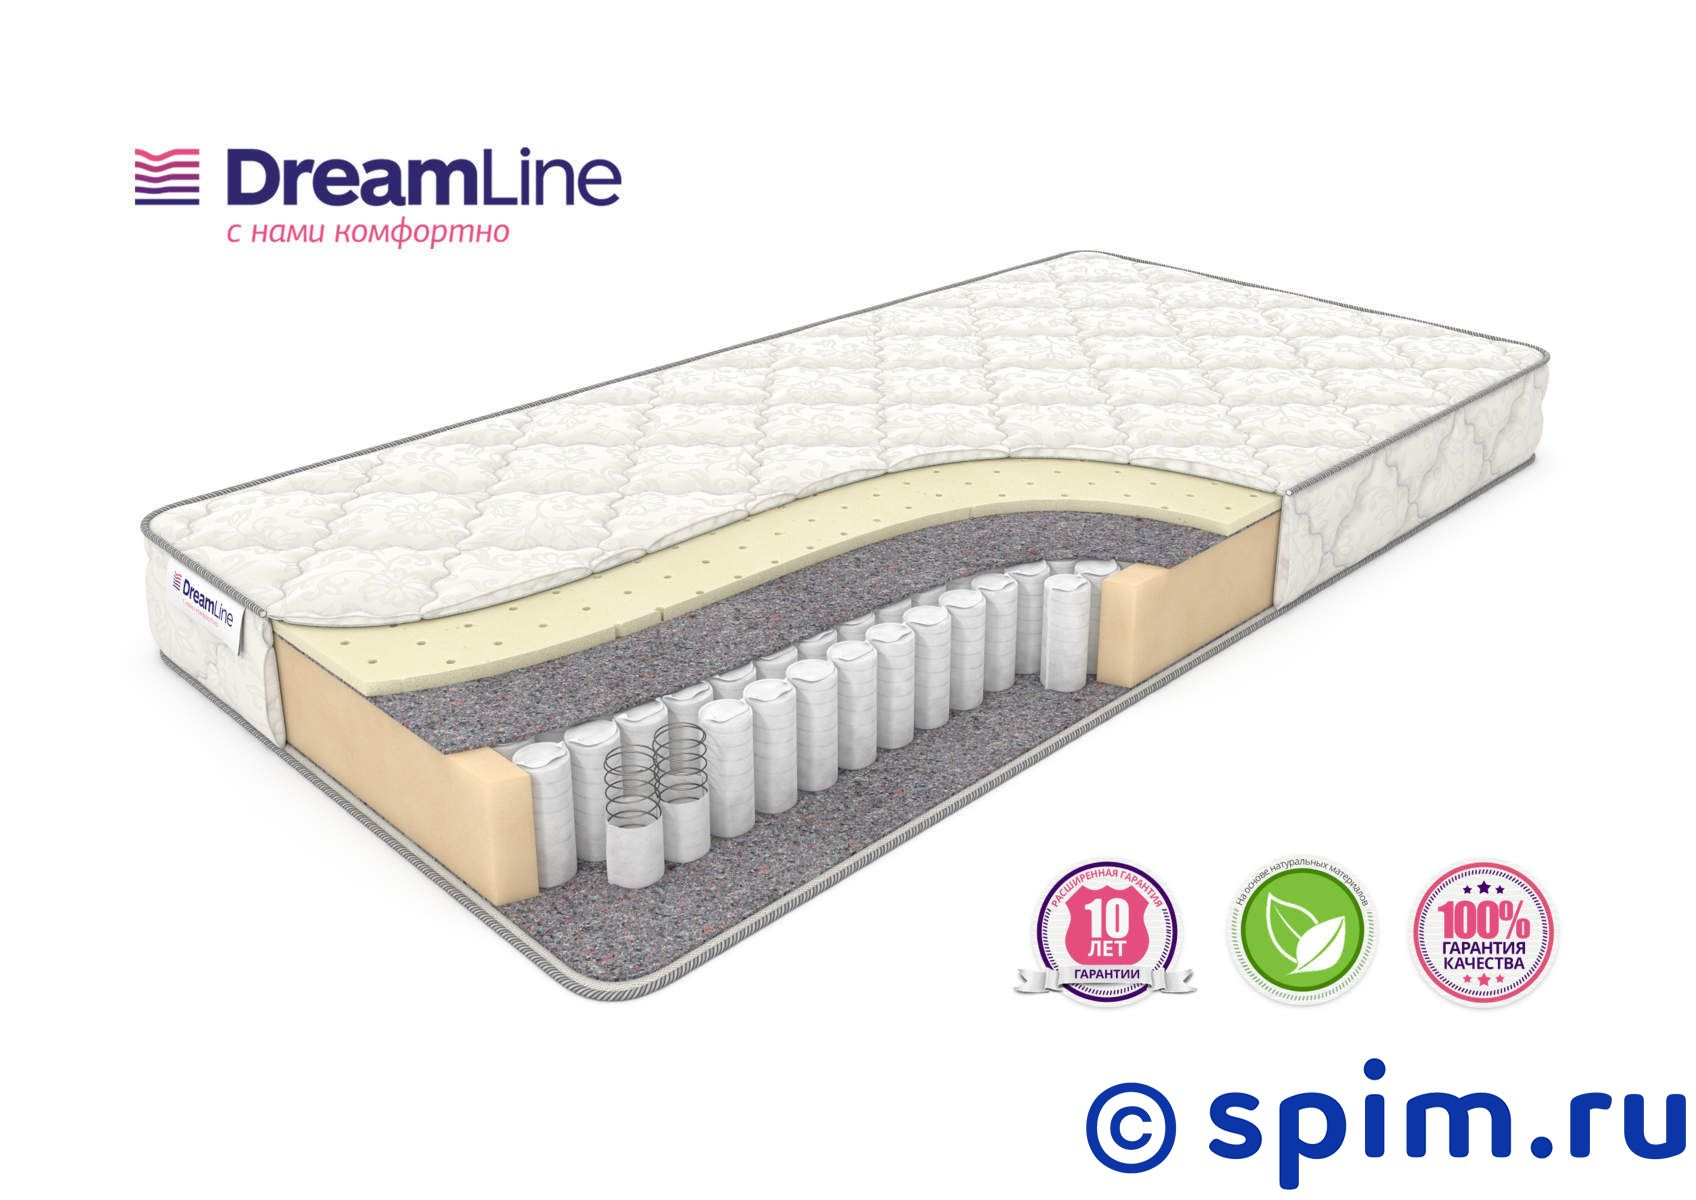 Матрас DreamLine Single Sleep 2 Tfk 200х190 см